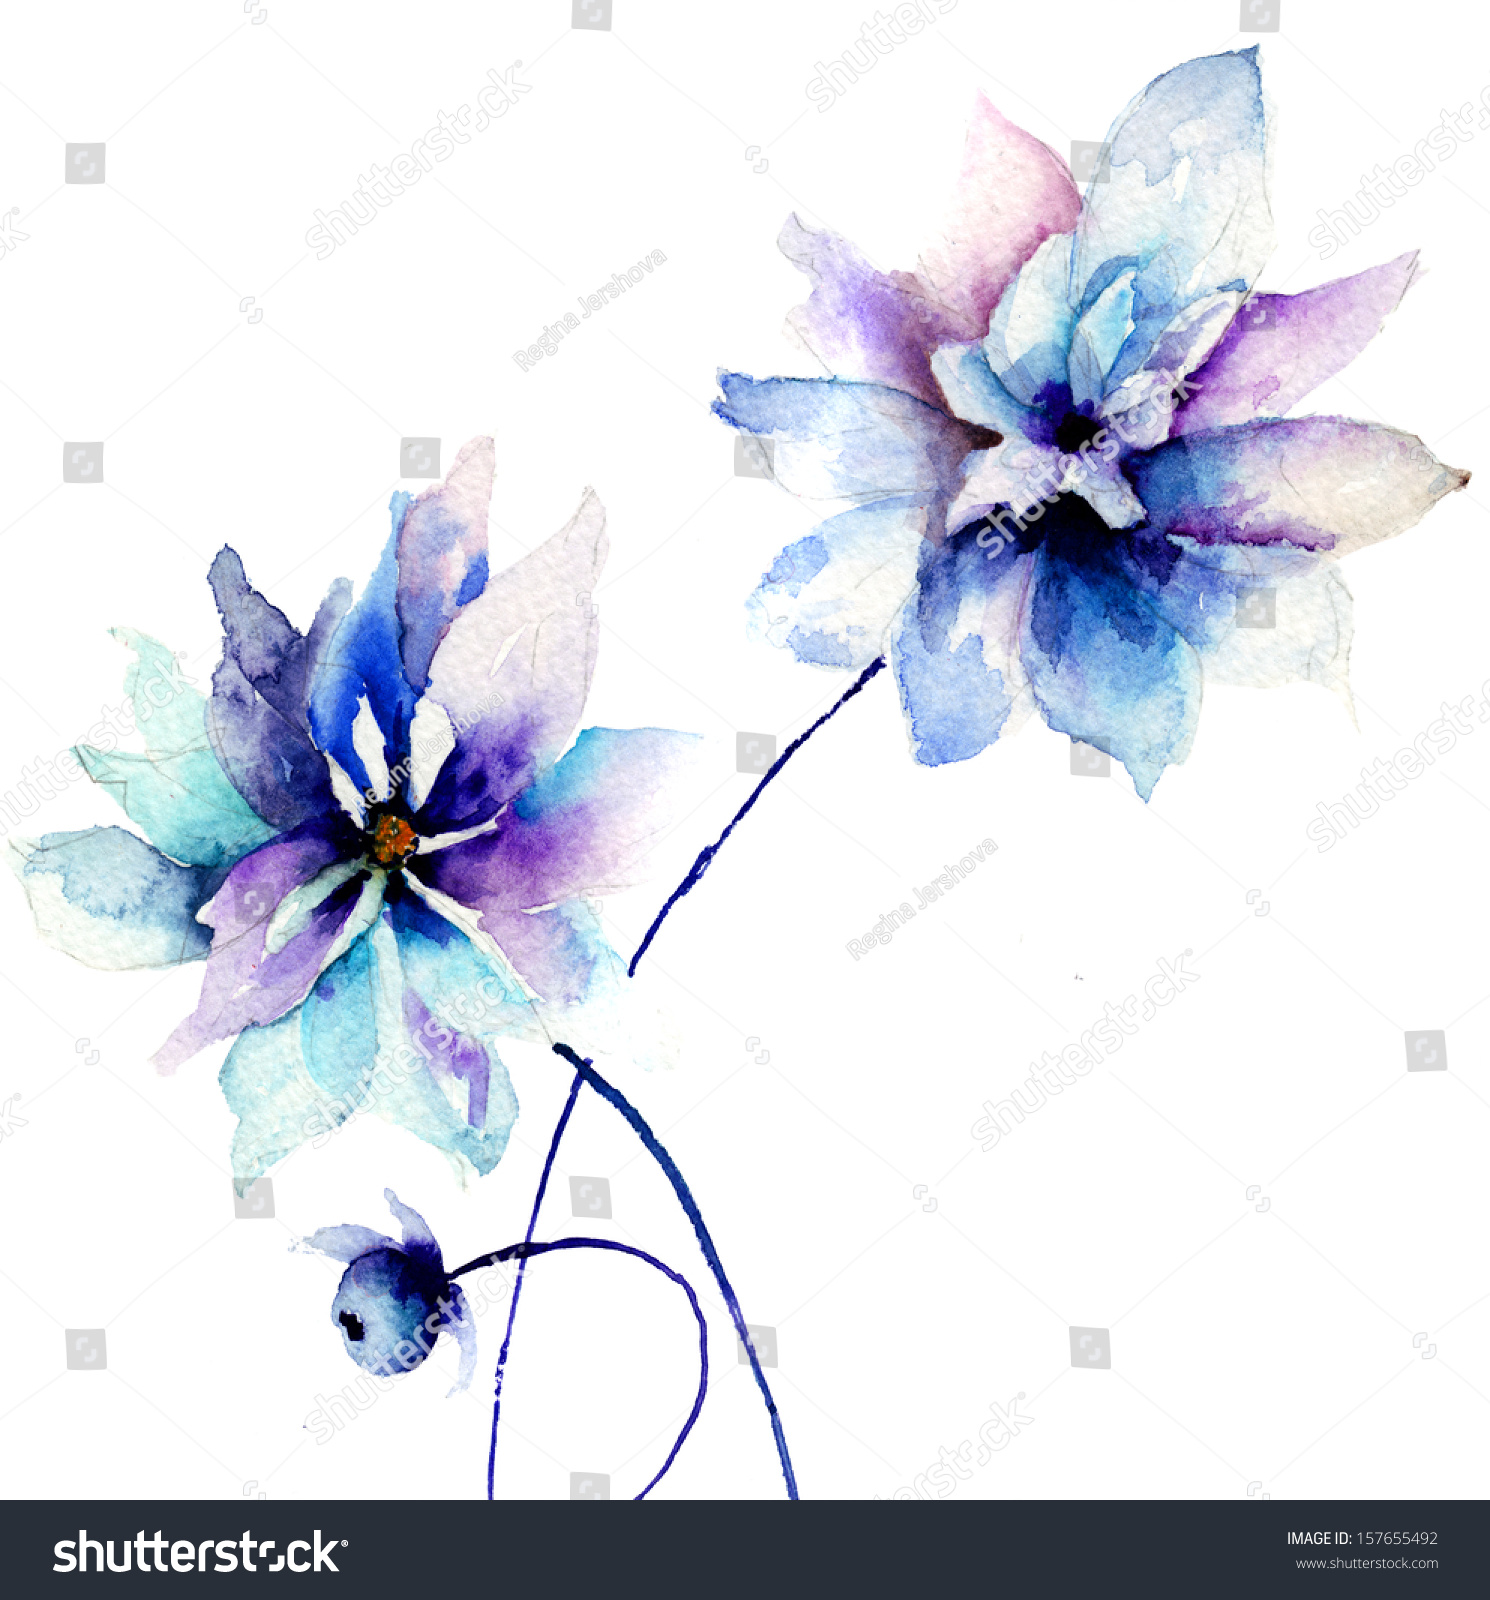 Beautiful blue flowers pictures gallery flower wallpaper hd beautiful blue flowers watercolor painting stock illustration beautiful blue flowers watercolor painting izmirmasajfo izmirmasajfo